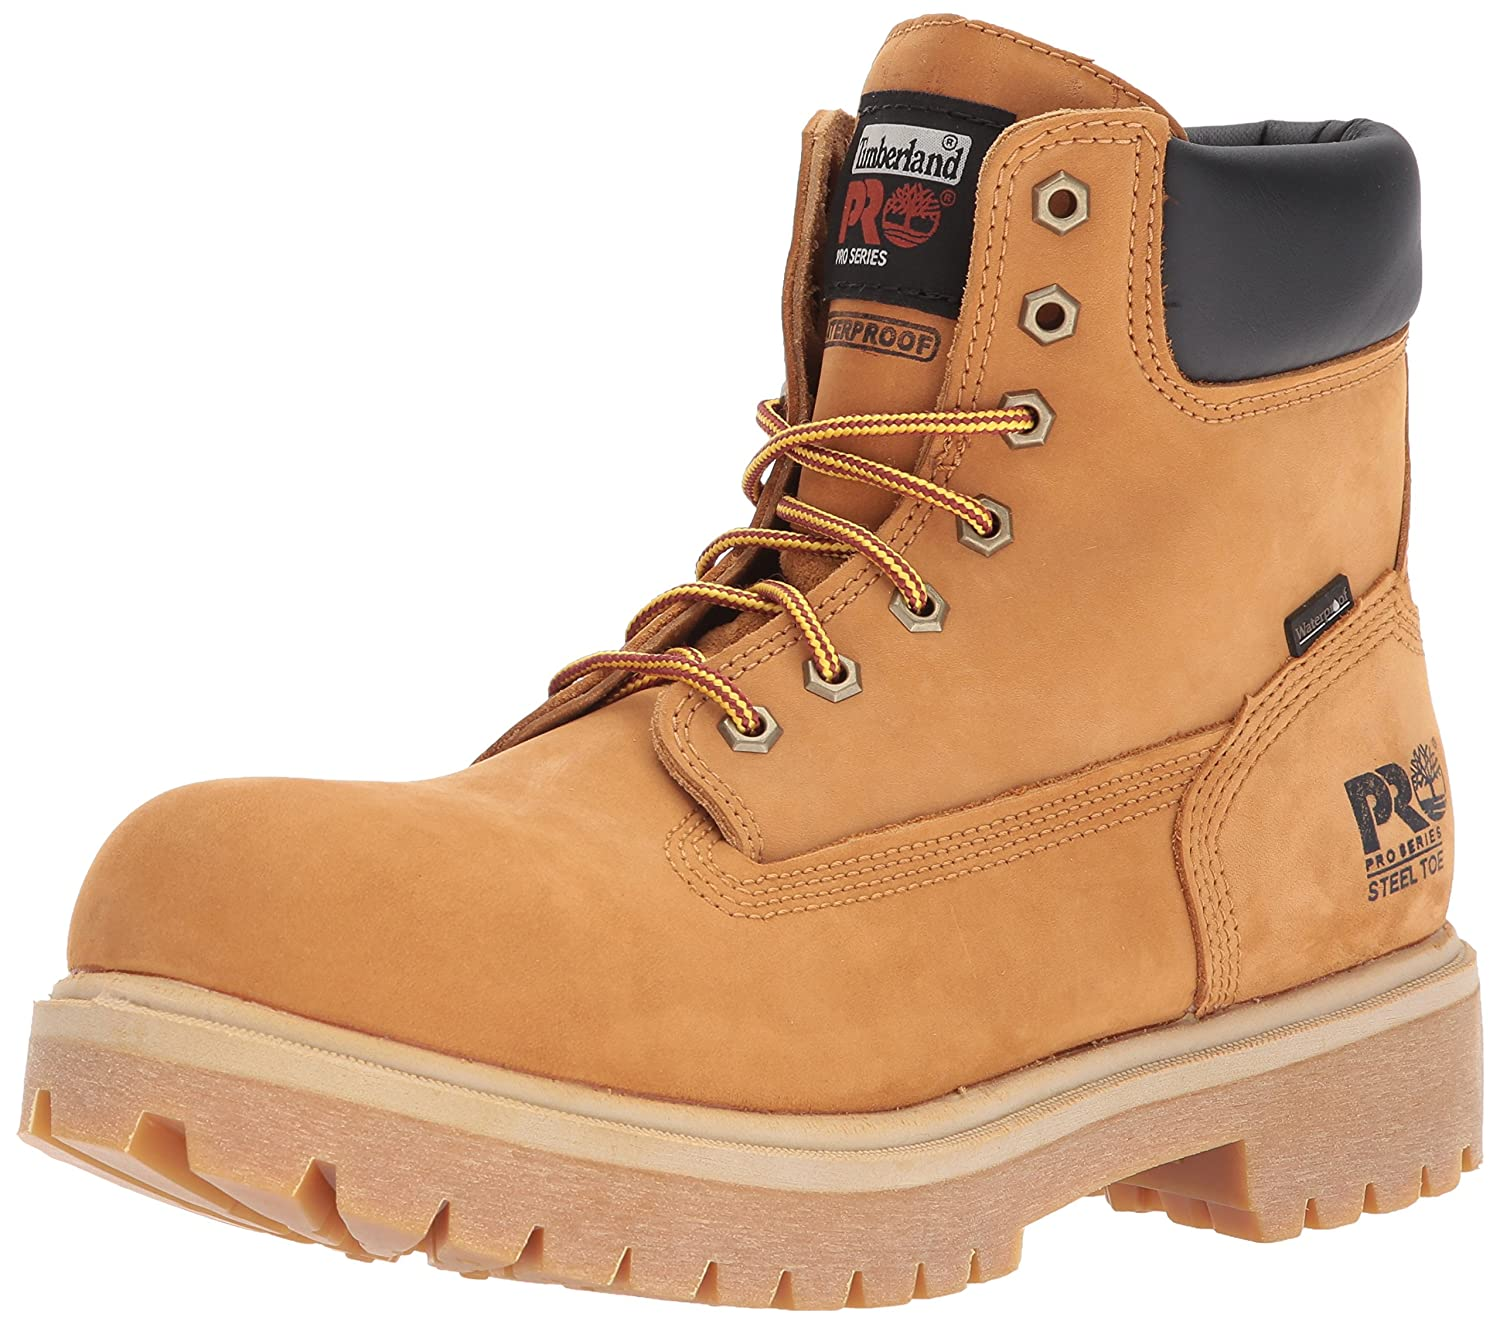 Timberland PRO Direct Attach 6 Steel Safety Toe Waterproof Insulated Boot Timberland PRO Direct Attach 6 Steel Safety Toe Waterproof Insulated Boot 26038